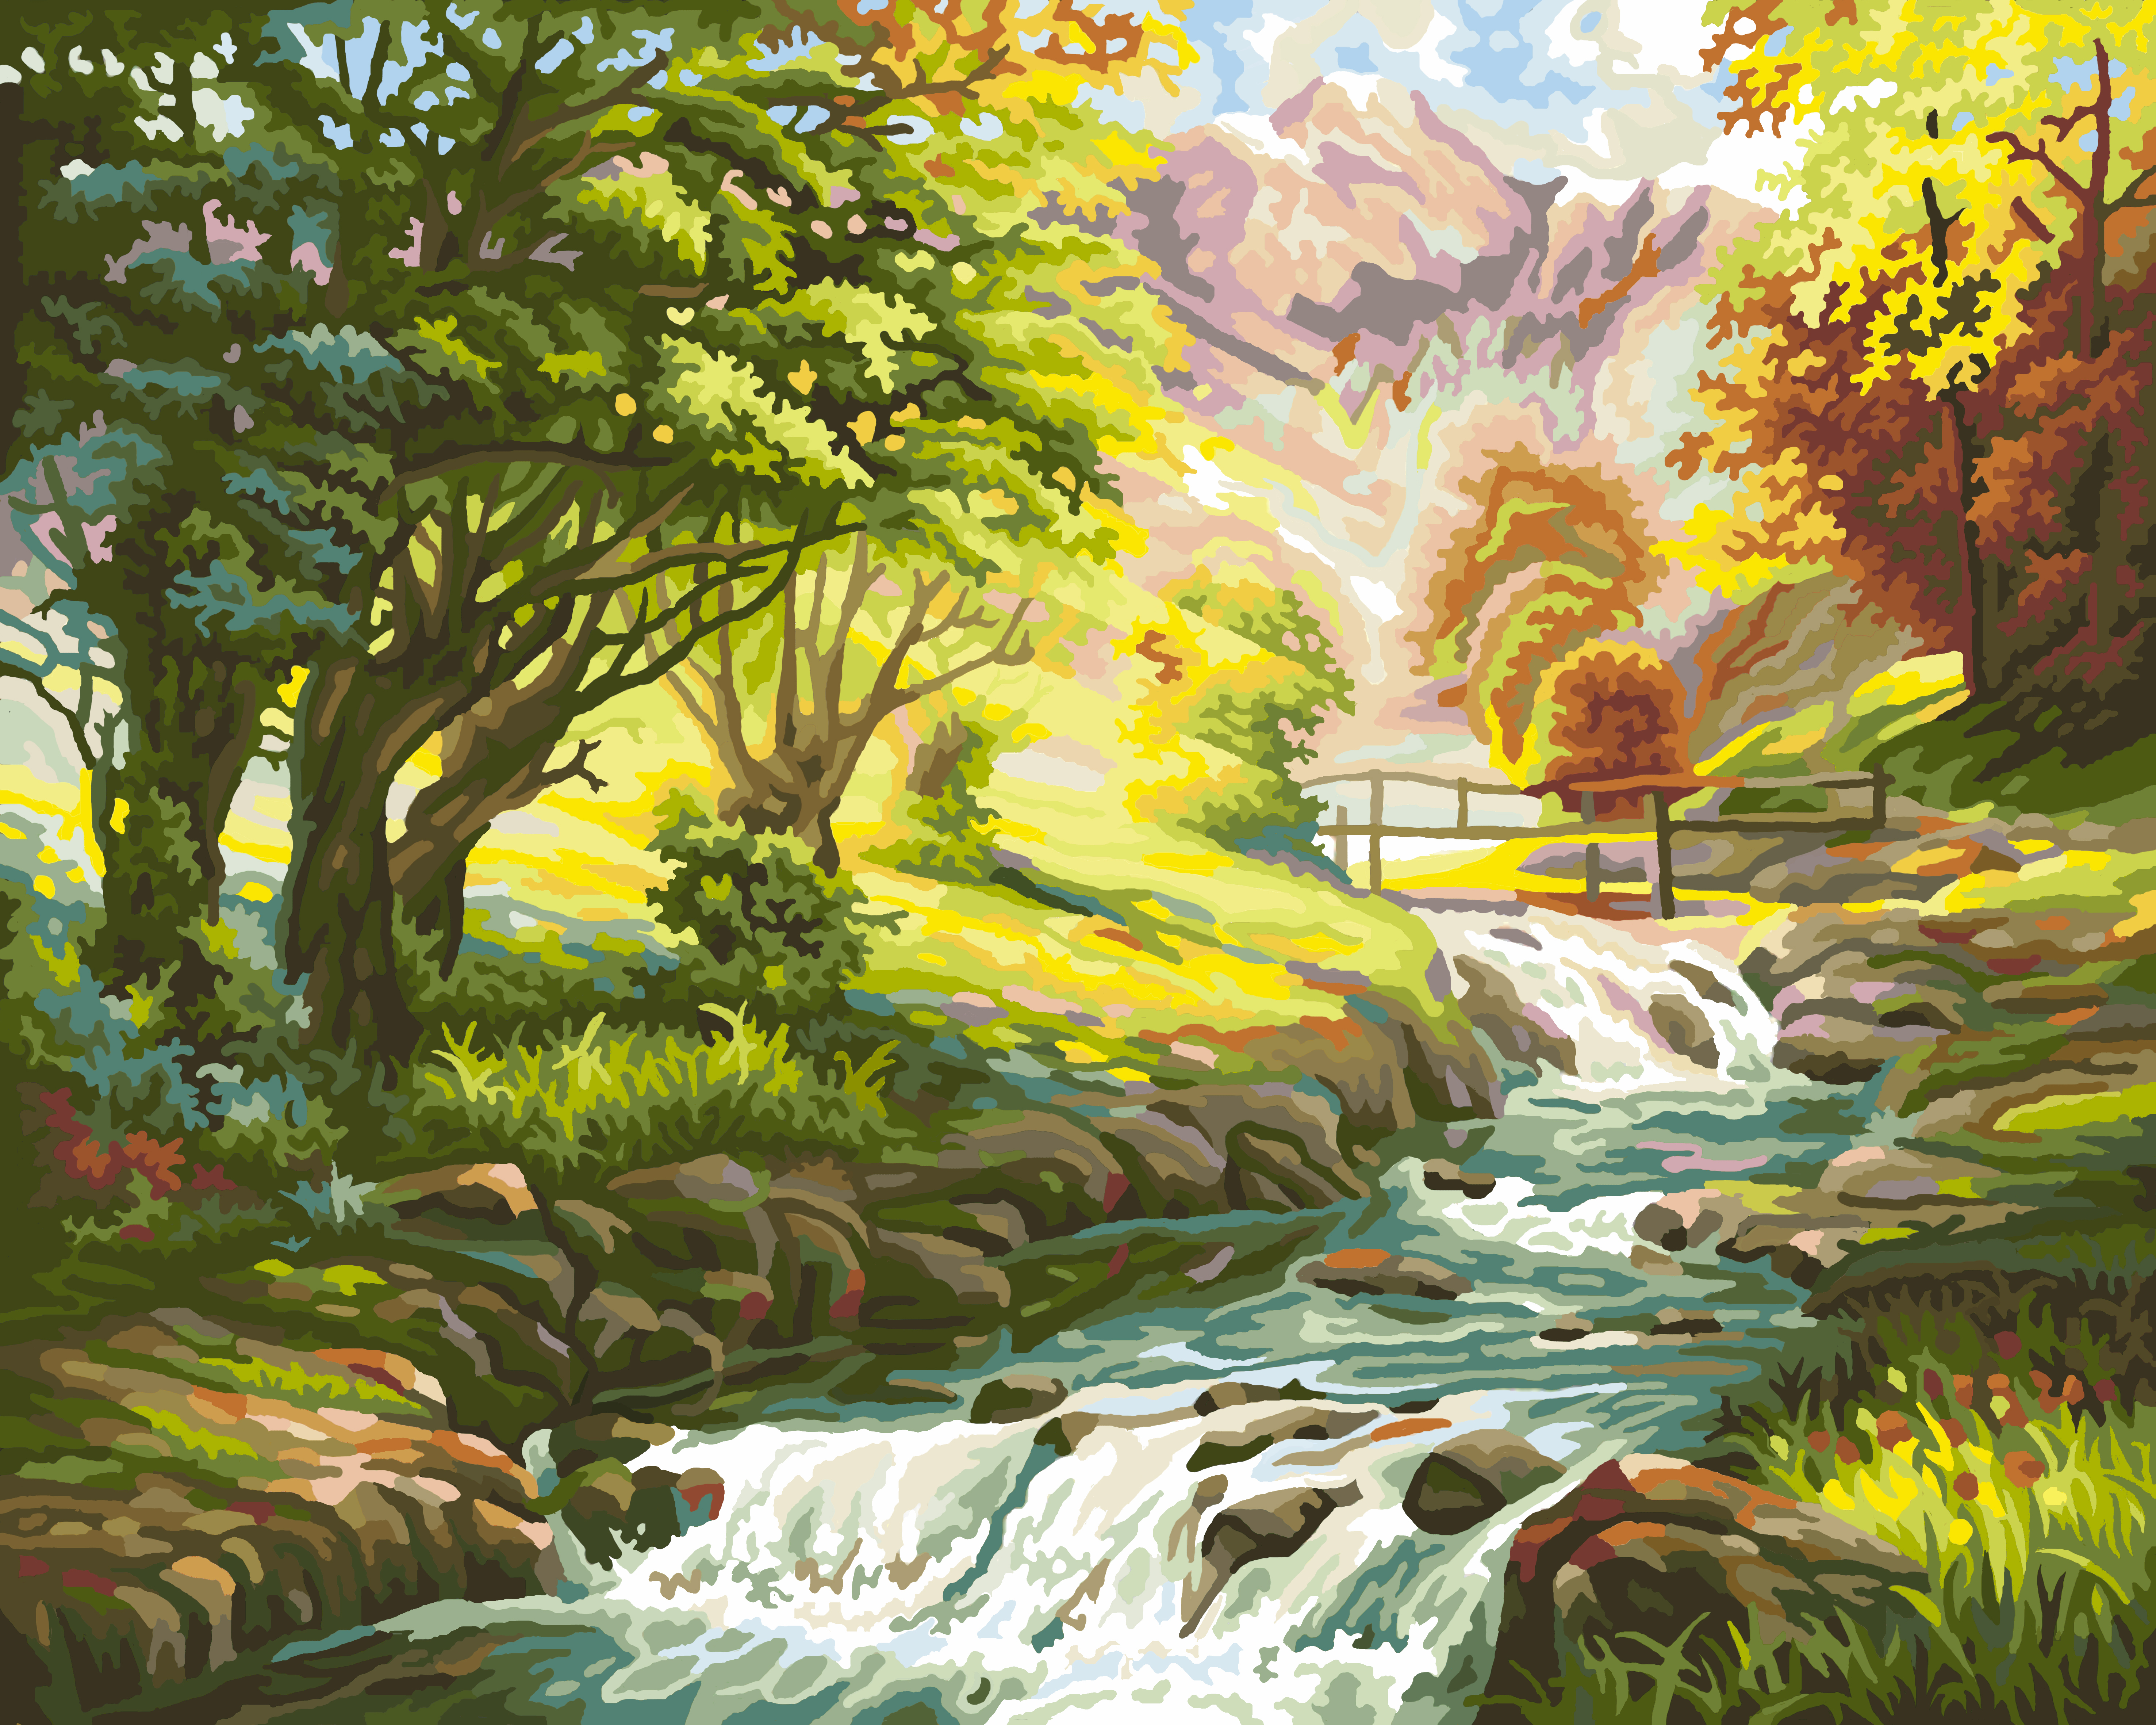 wonderland digital oil painting by numbers diy home